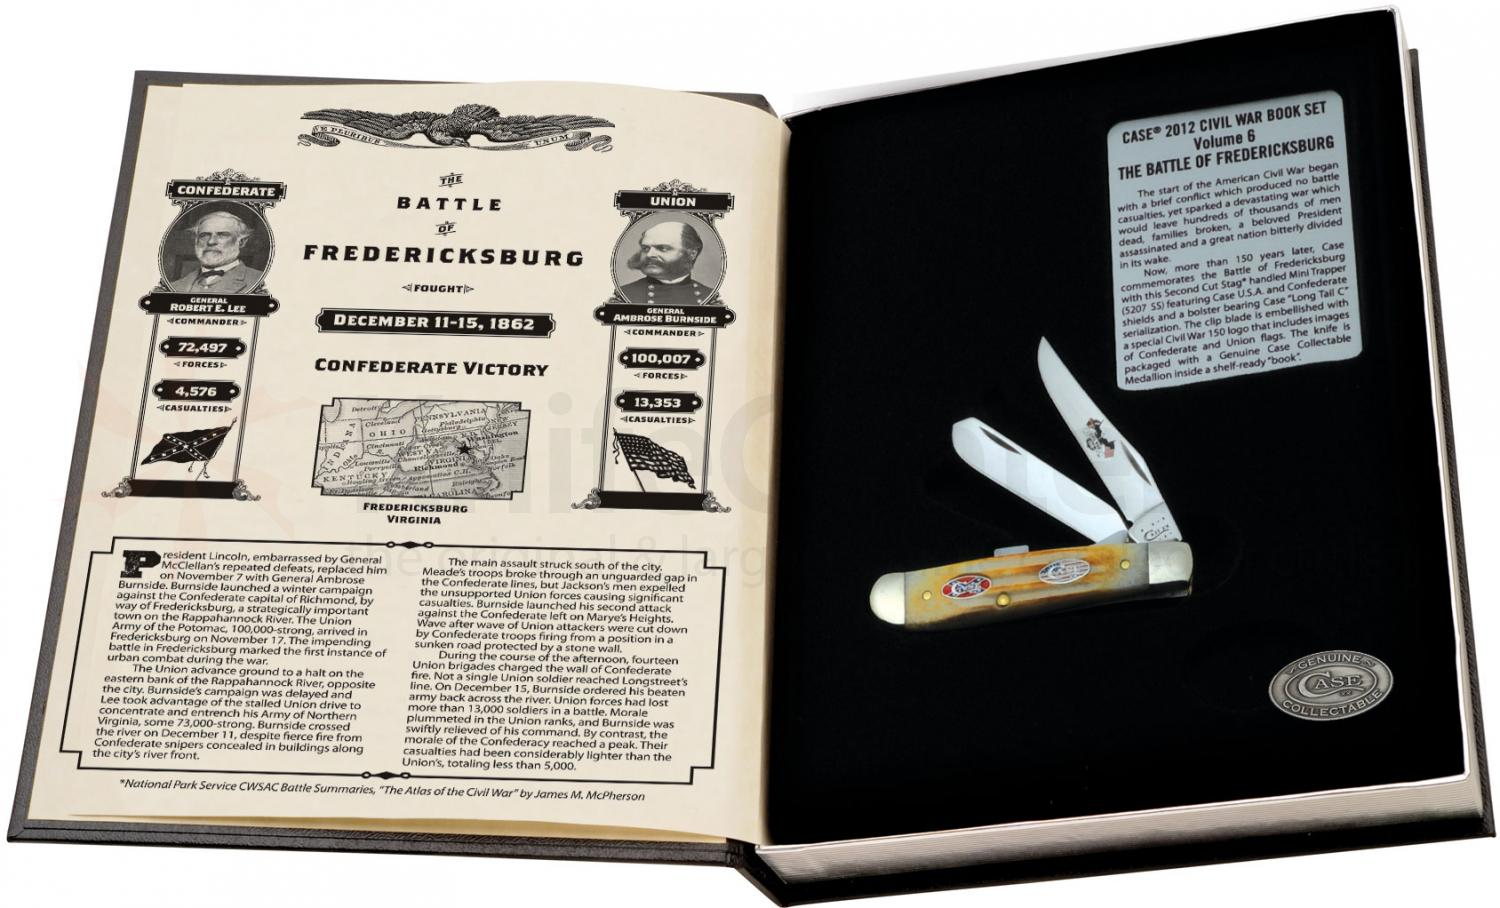 Case Civil War Commemoratives Mini Trapper Battle of Fredericksburg Set (5207 SS)